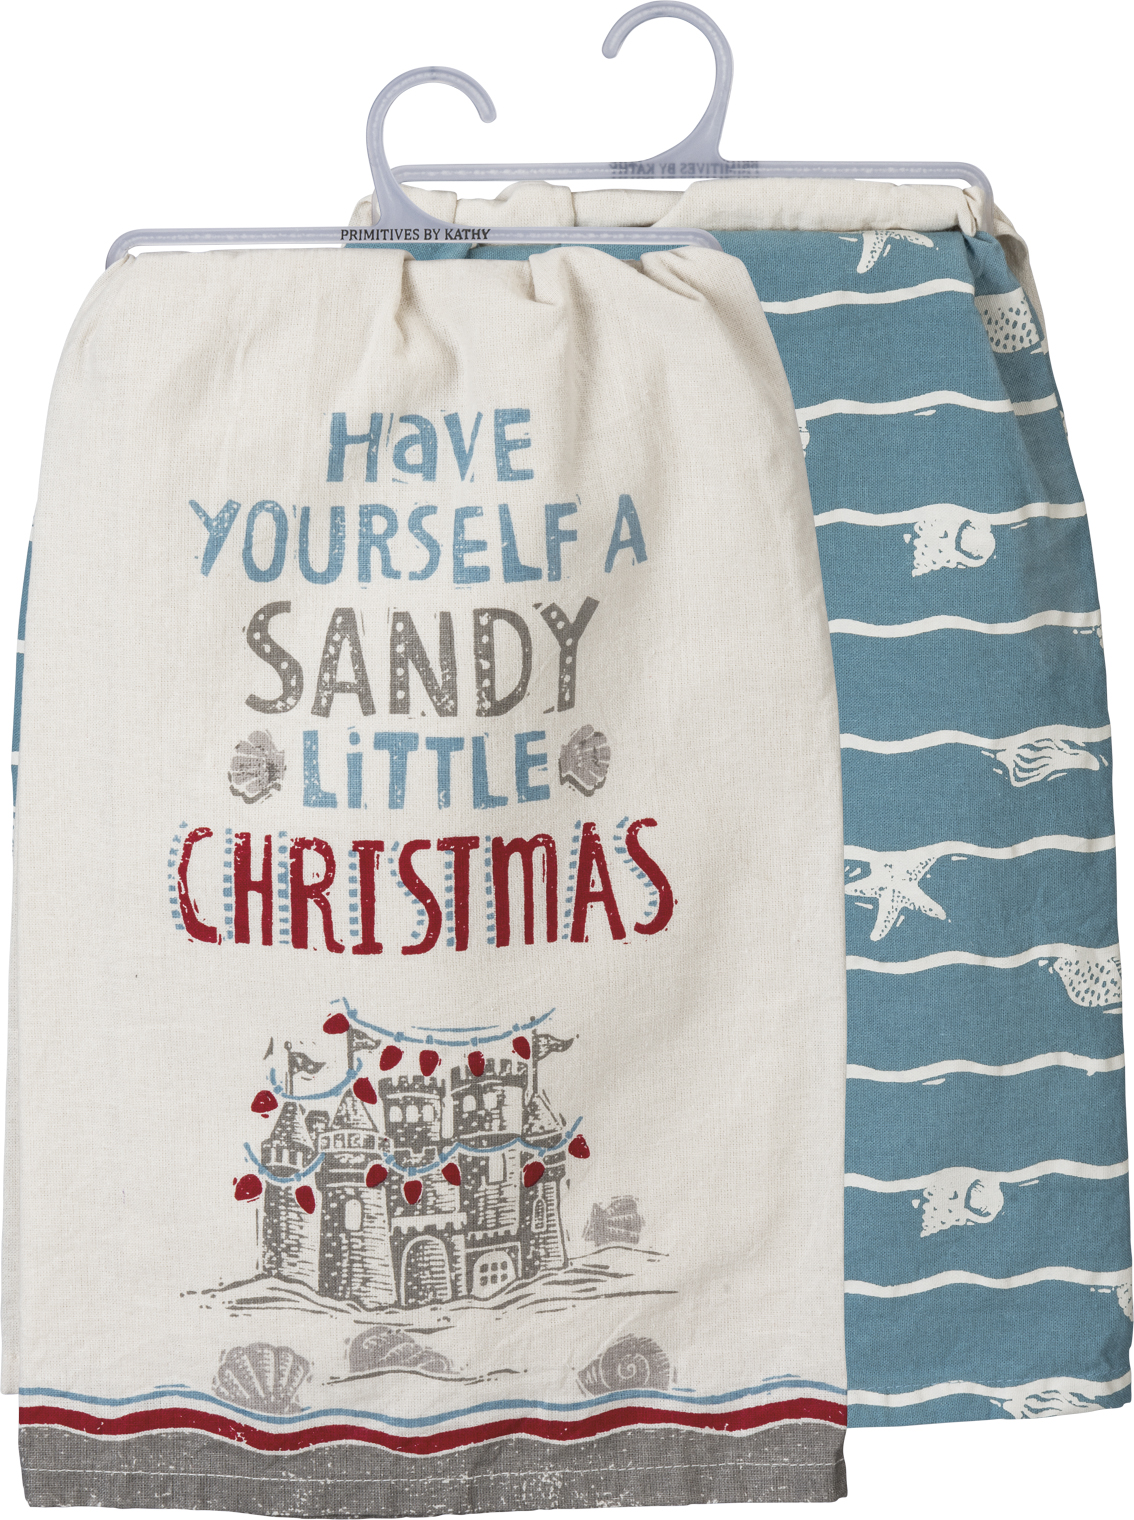 Have Yourself A Sandy Little Christmas Cotton Dish Towel Set 28x28 Set Of 2 From Primitives By Kathy